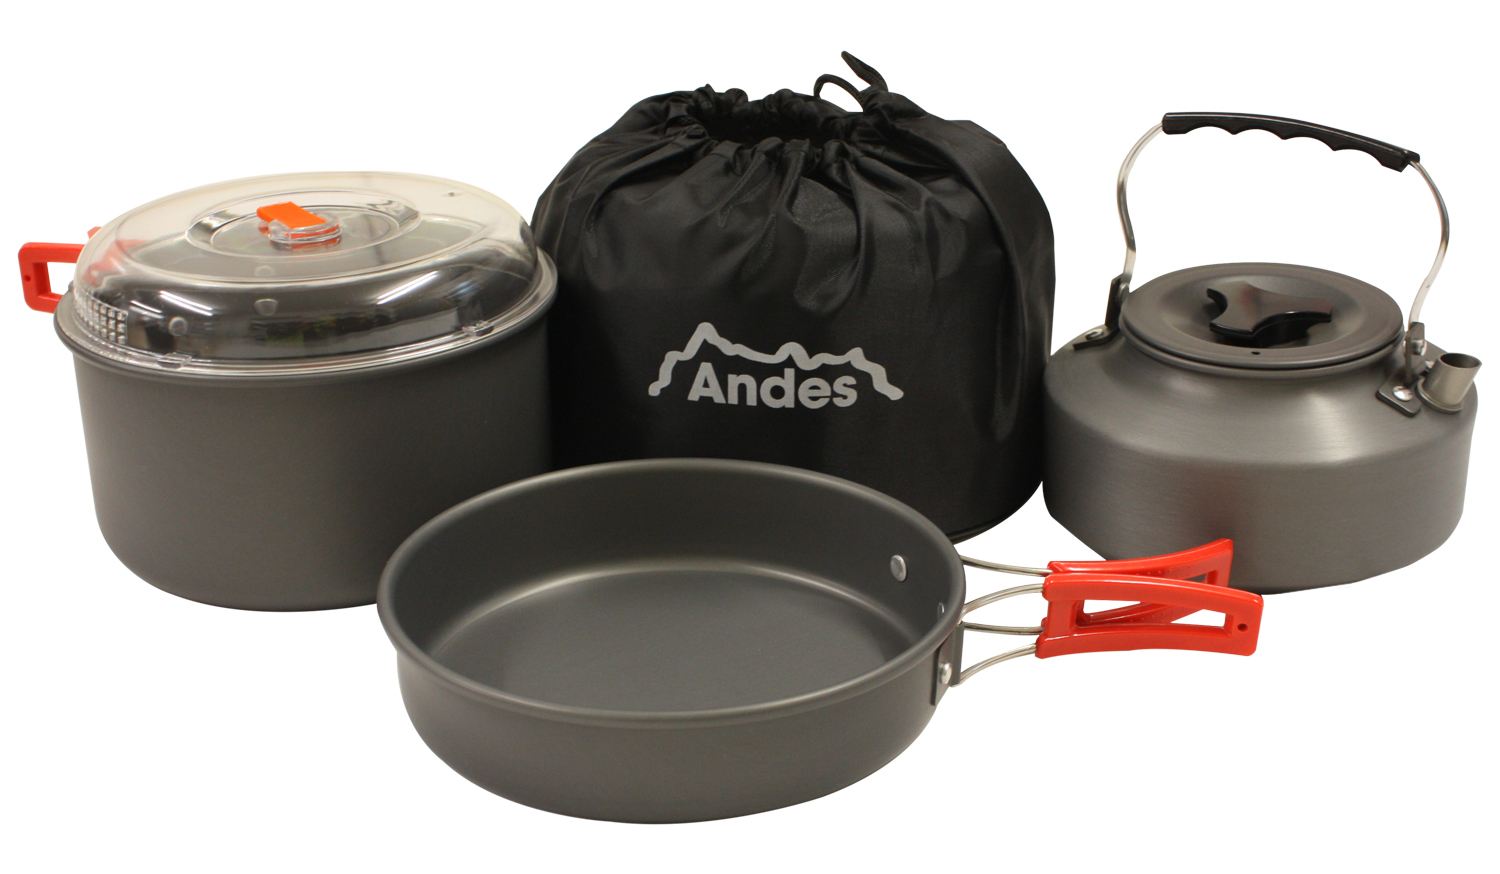 Portable Camping Cooking : Portable camping cook cooking cookware set anodised